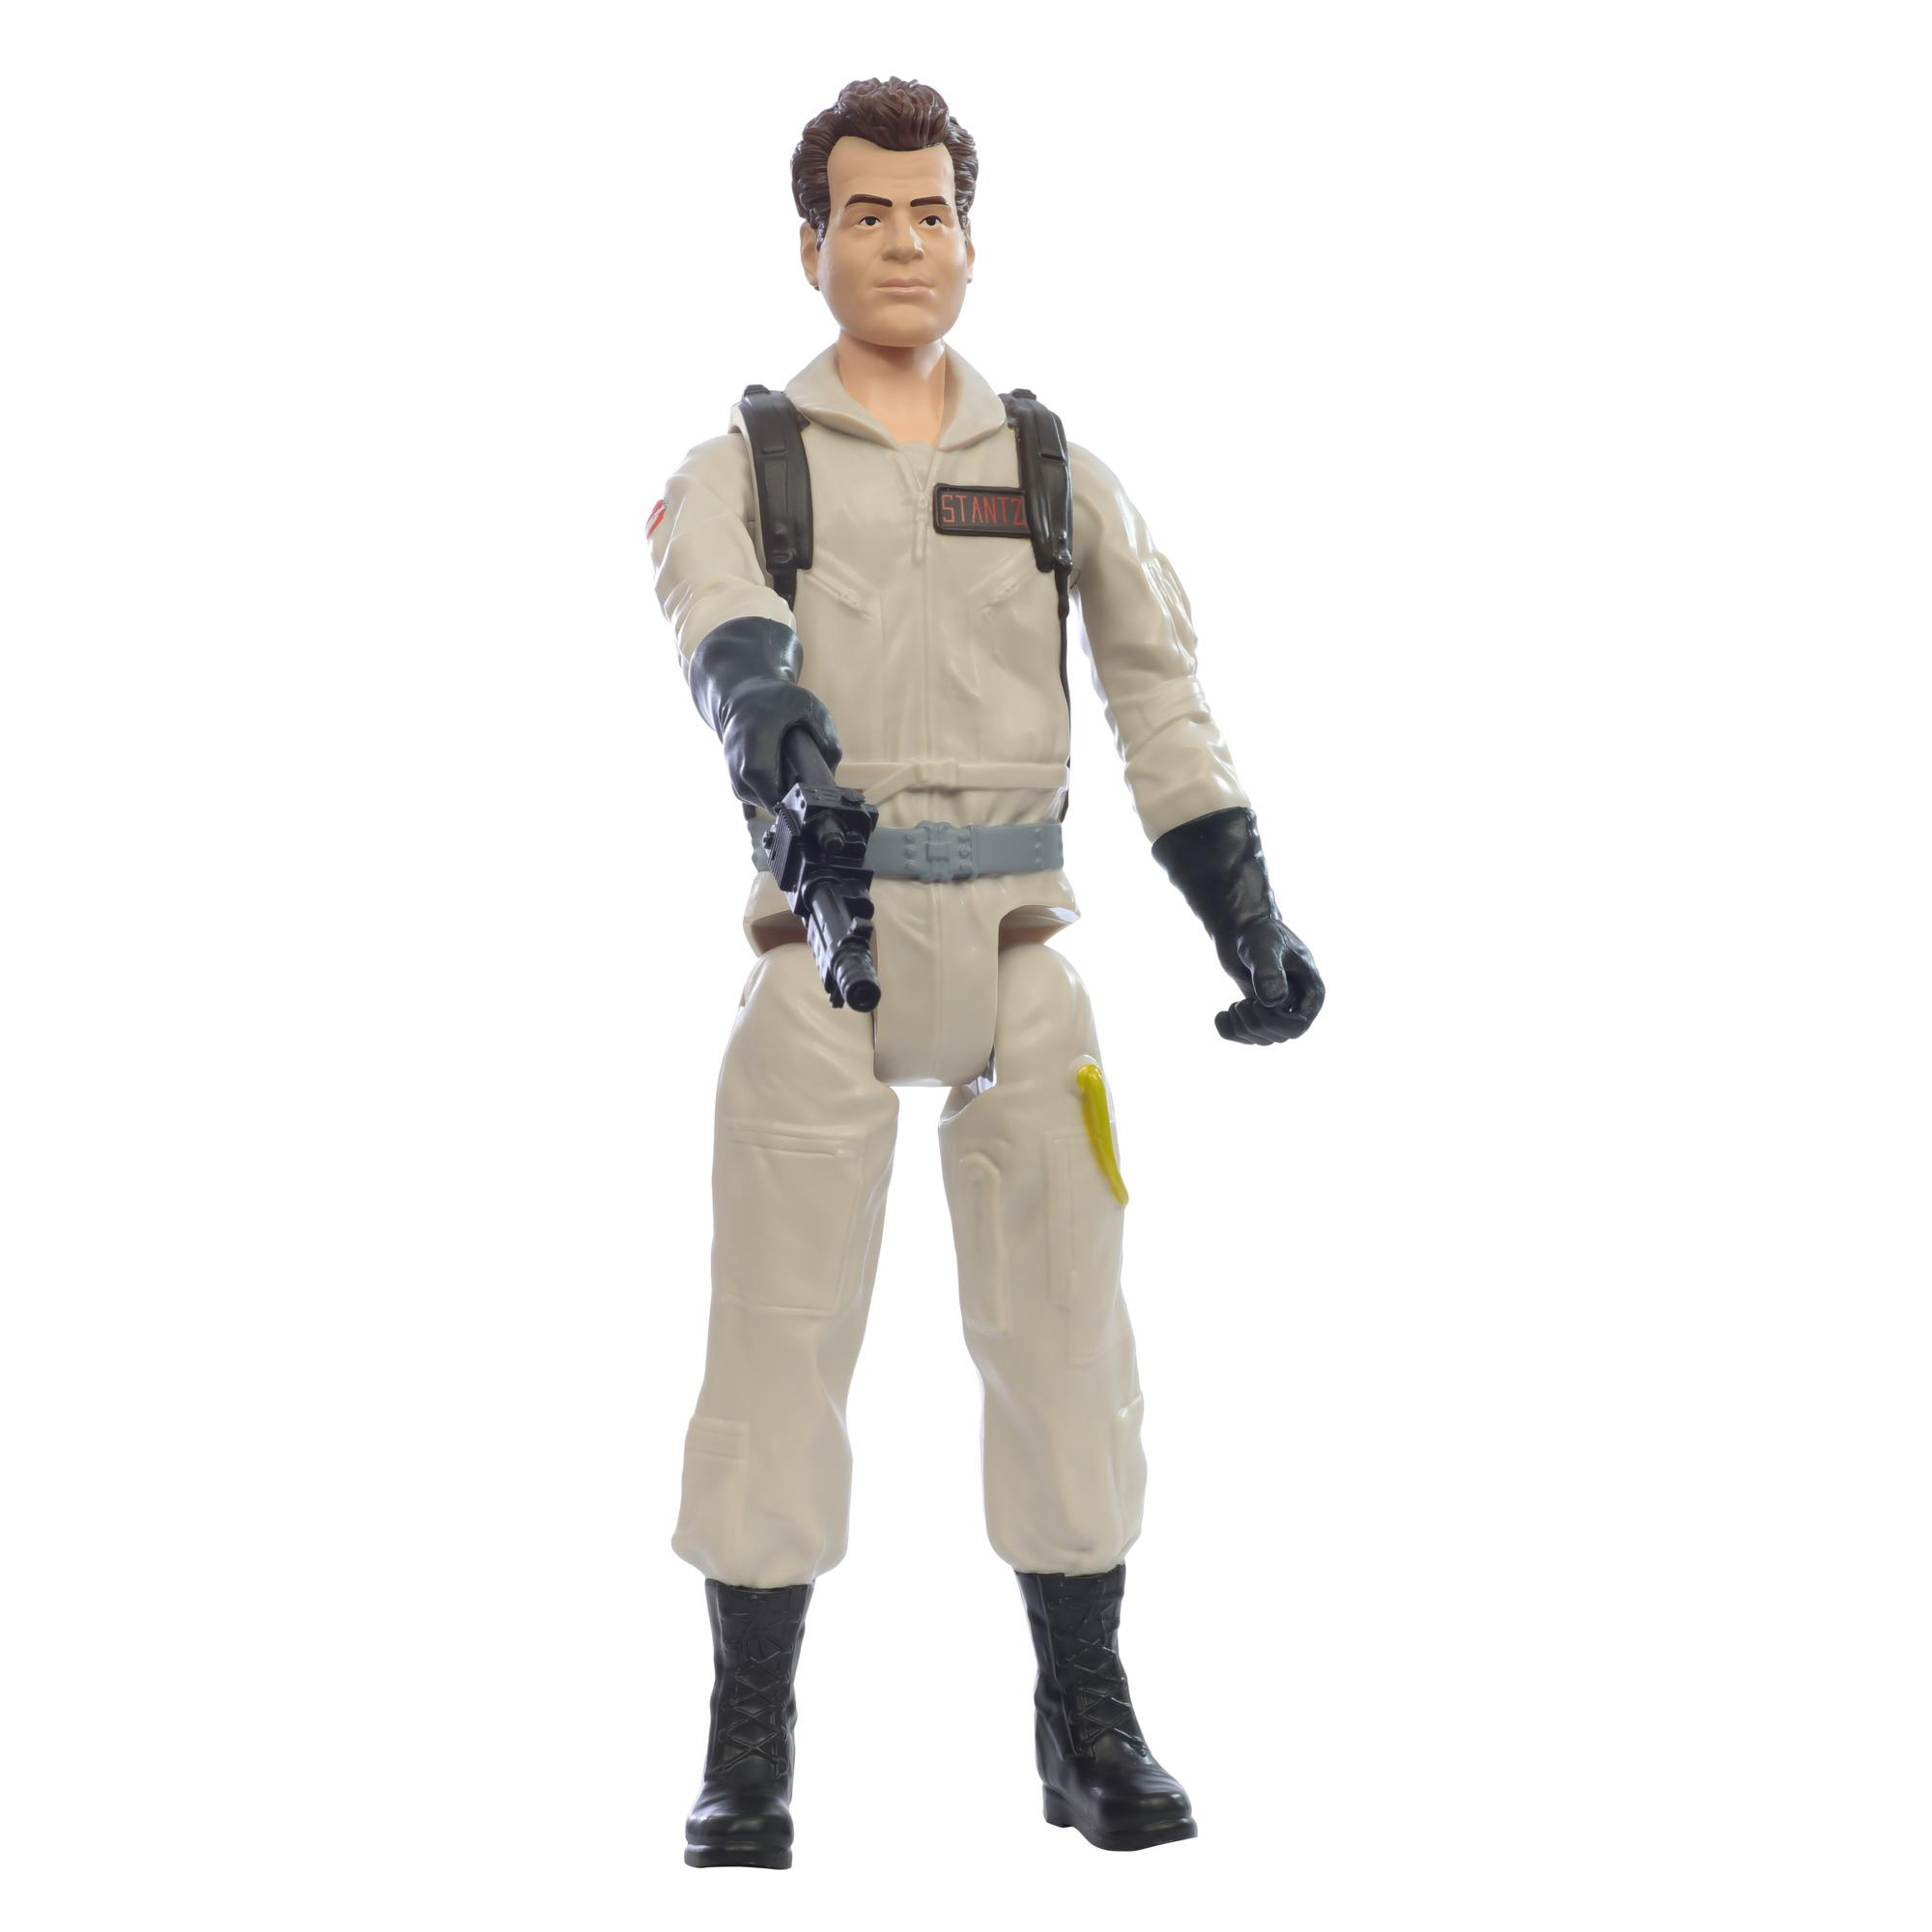 Ghostbusters Ray Stantz Toy 12-Inch-Scale Collectible Classic 1984 Ghostbusters Figure, Toys for Kids Ages 4 and Up